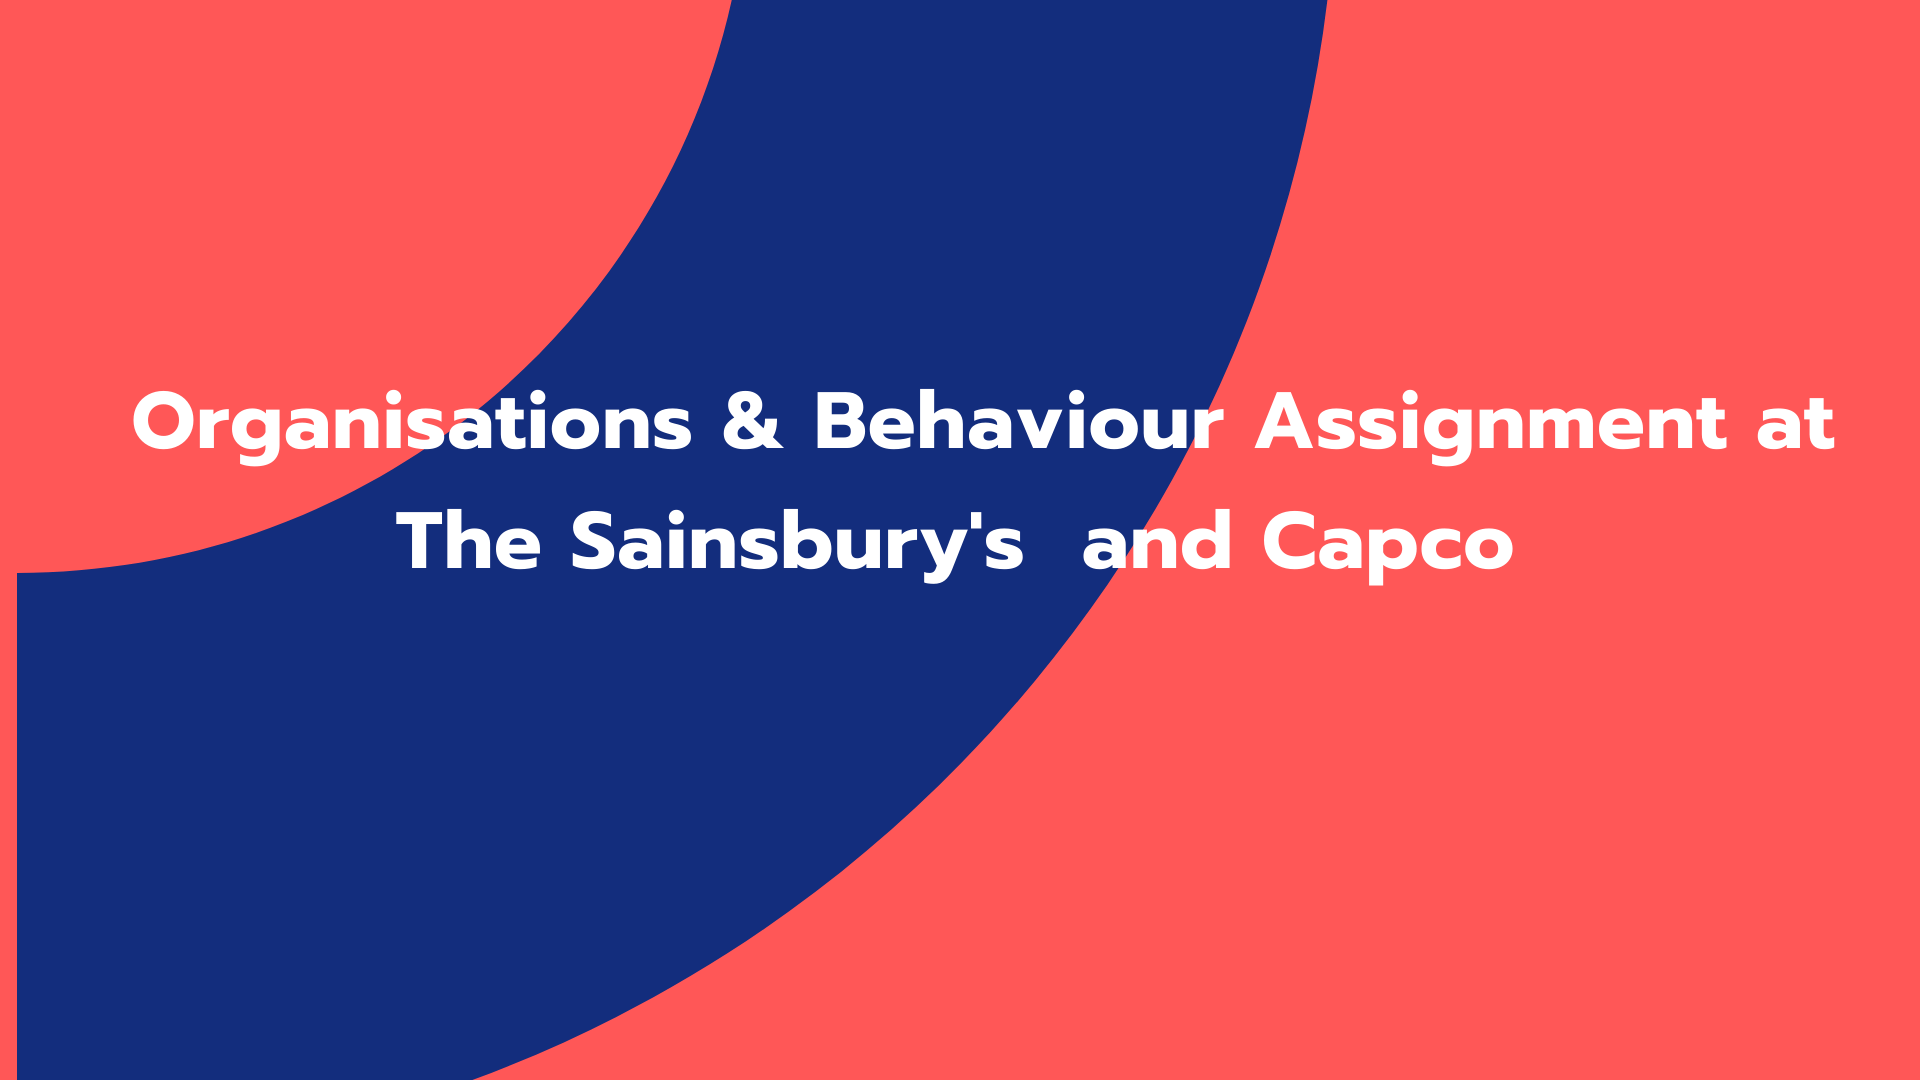 Organisations & Behaviour Assignment at The Sainsbury's and Capco